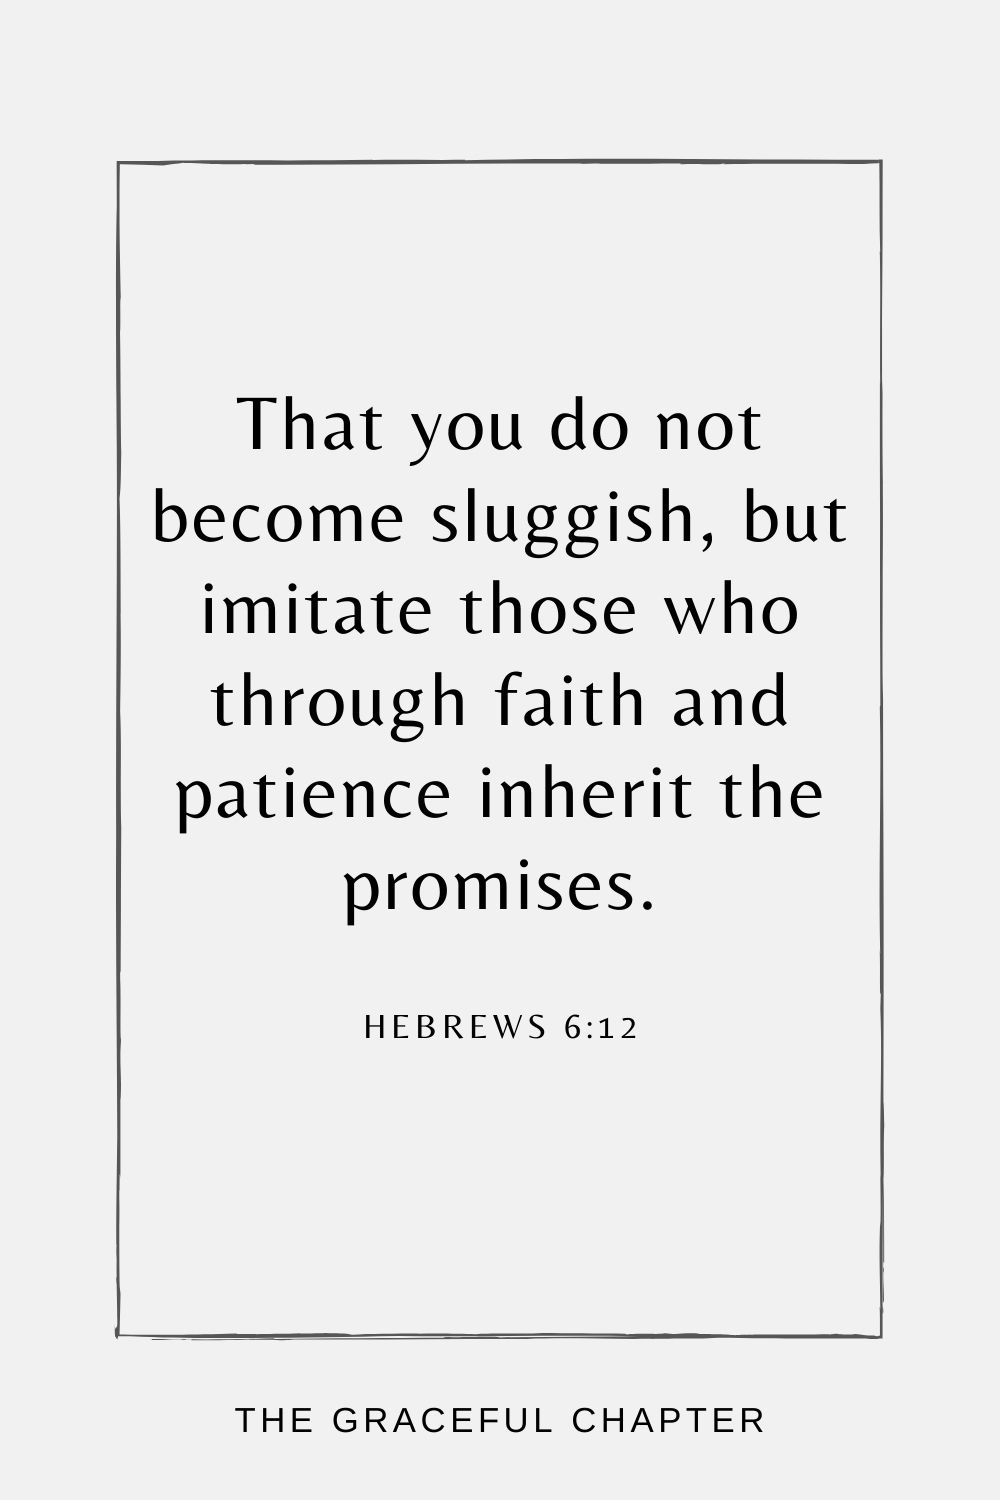 That you do not become sluggish, but imitate those who through faith and patience inherit the promises. Hebrews 6:12